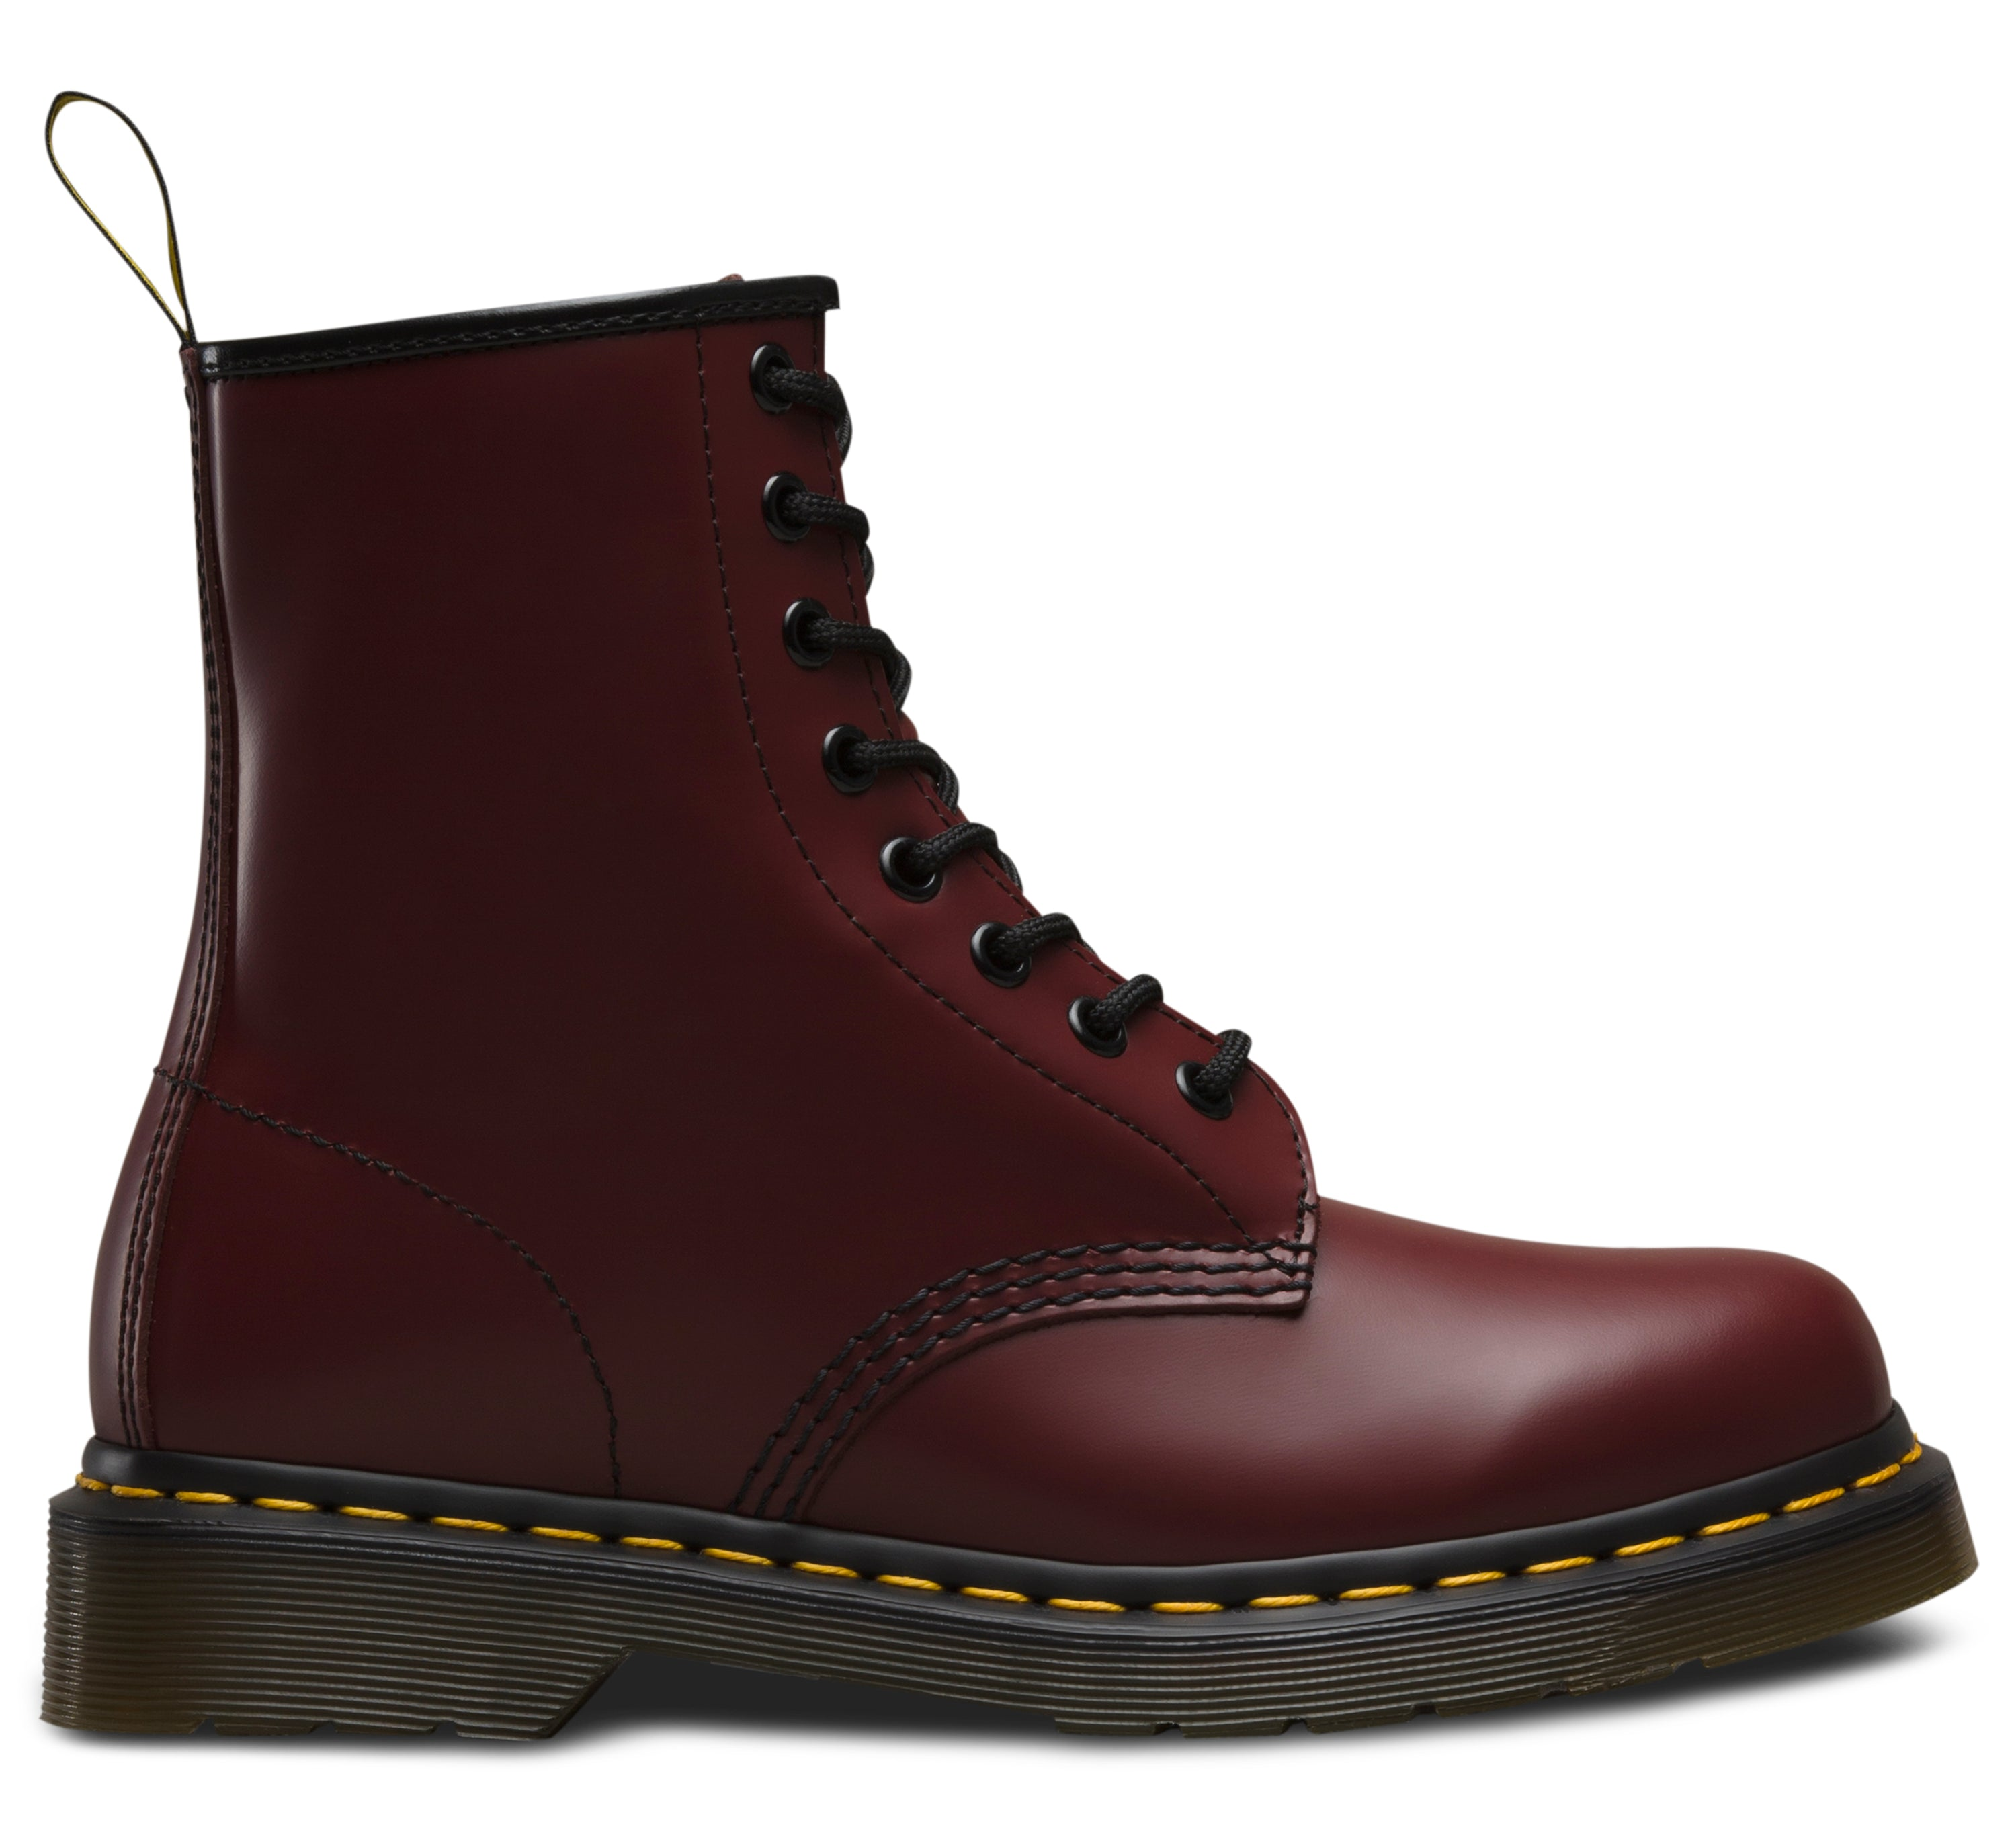 Dr. Marten 1460 Smooth Women's Boot Cherry